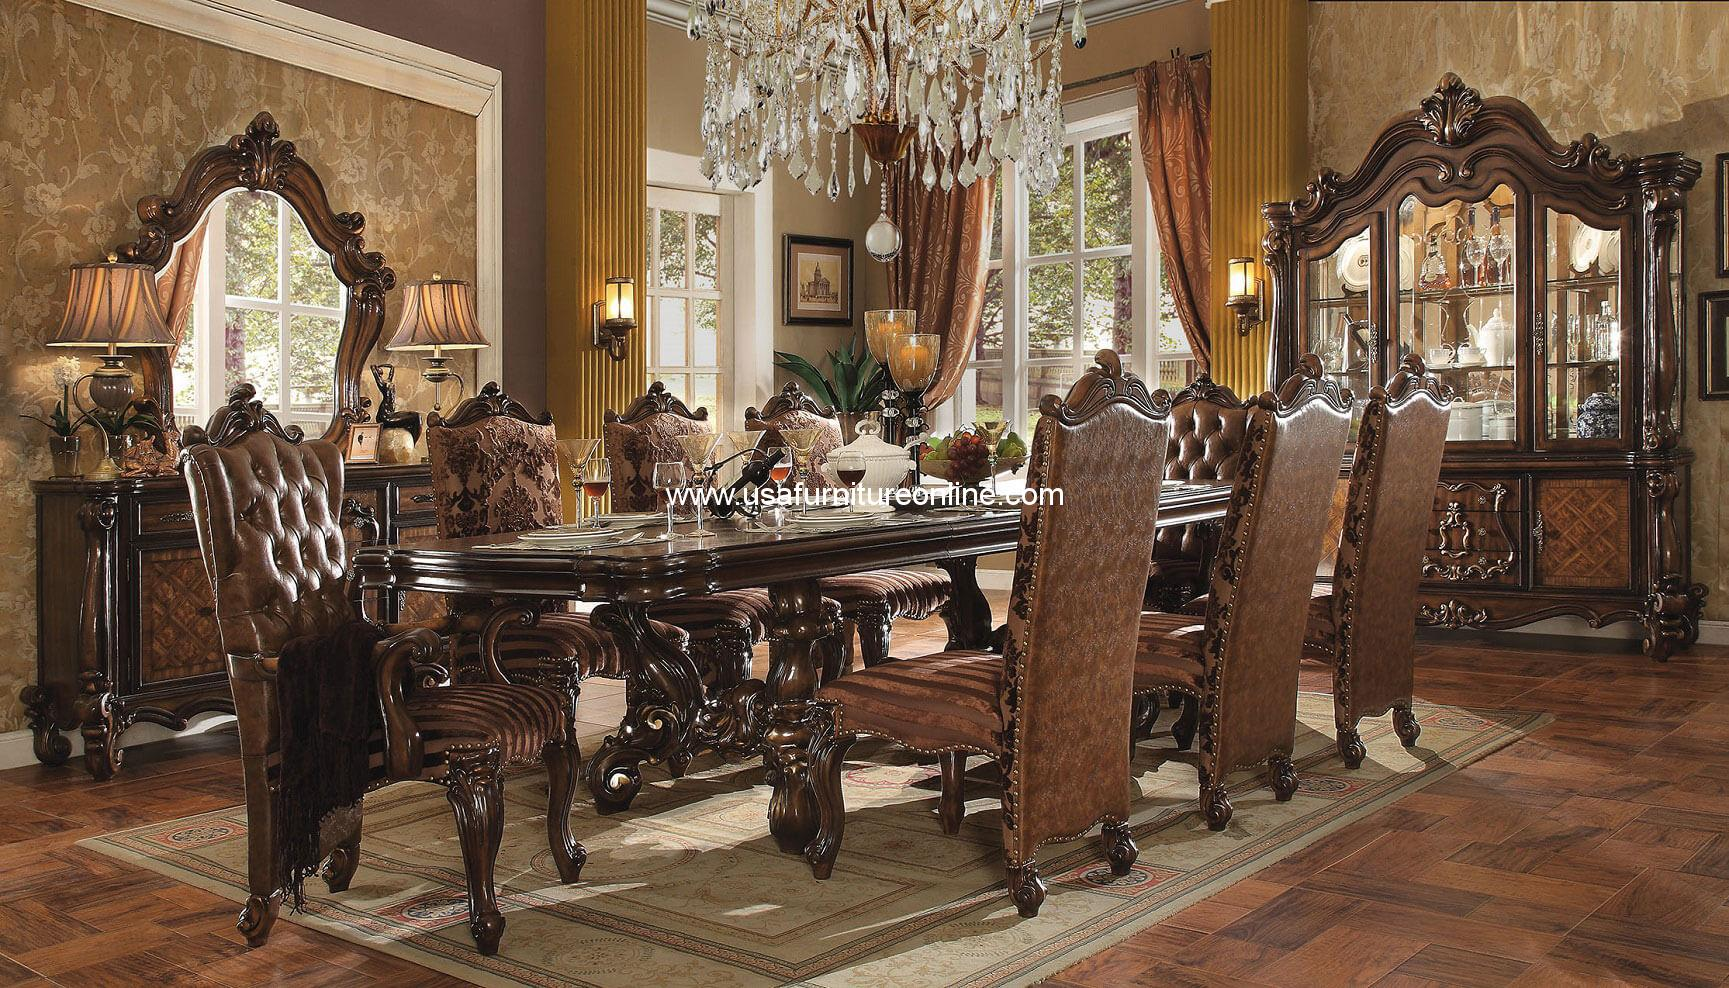 VERSAILLES DINING SET IN CHERRY OAK FINISH 9 PIECE EBay